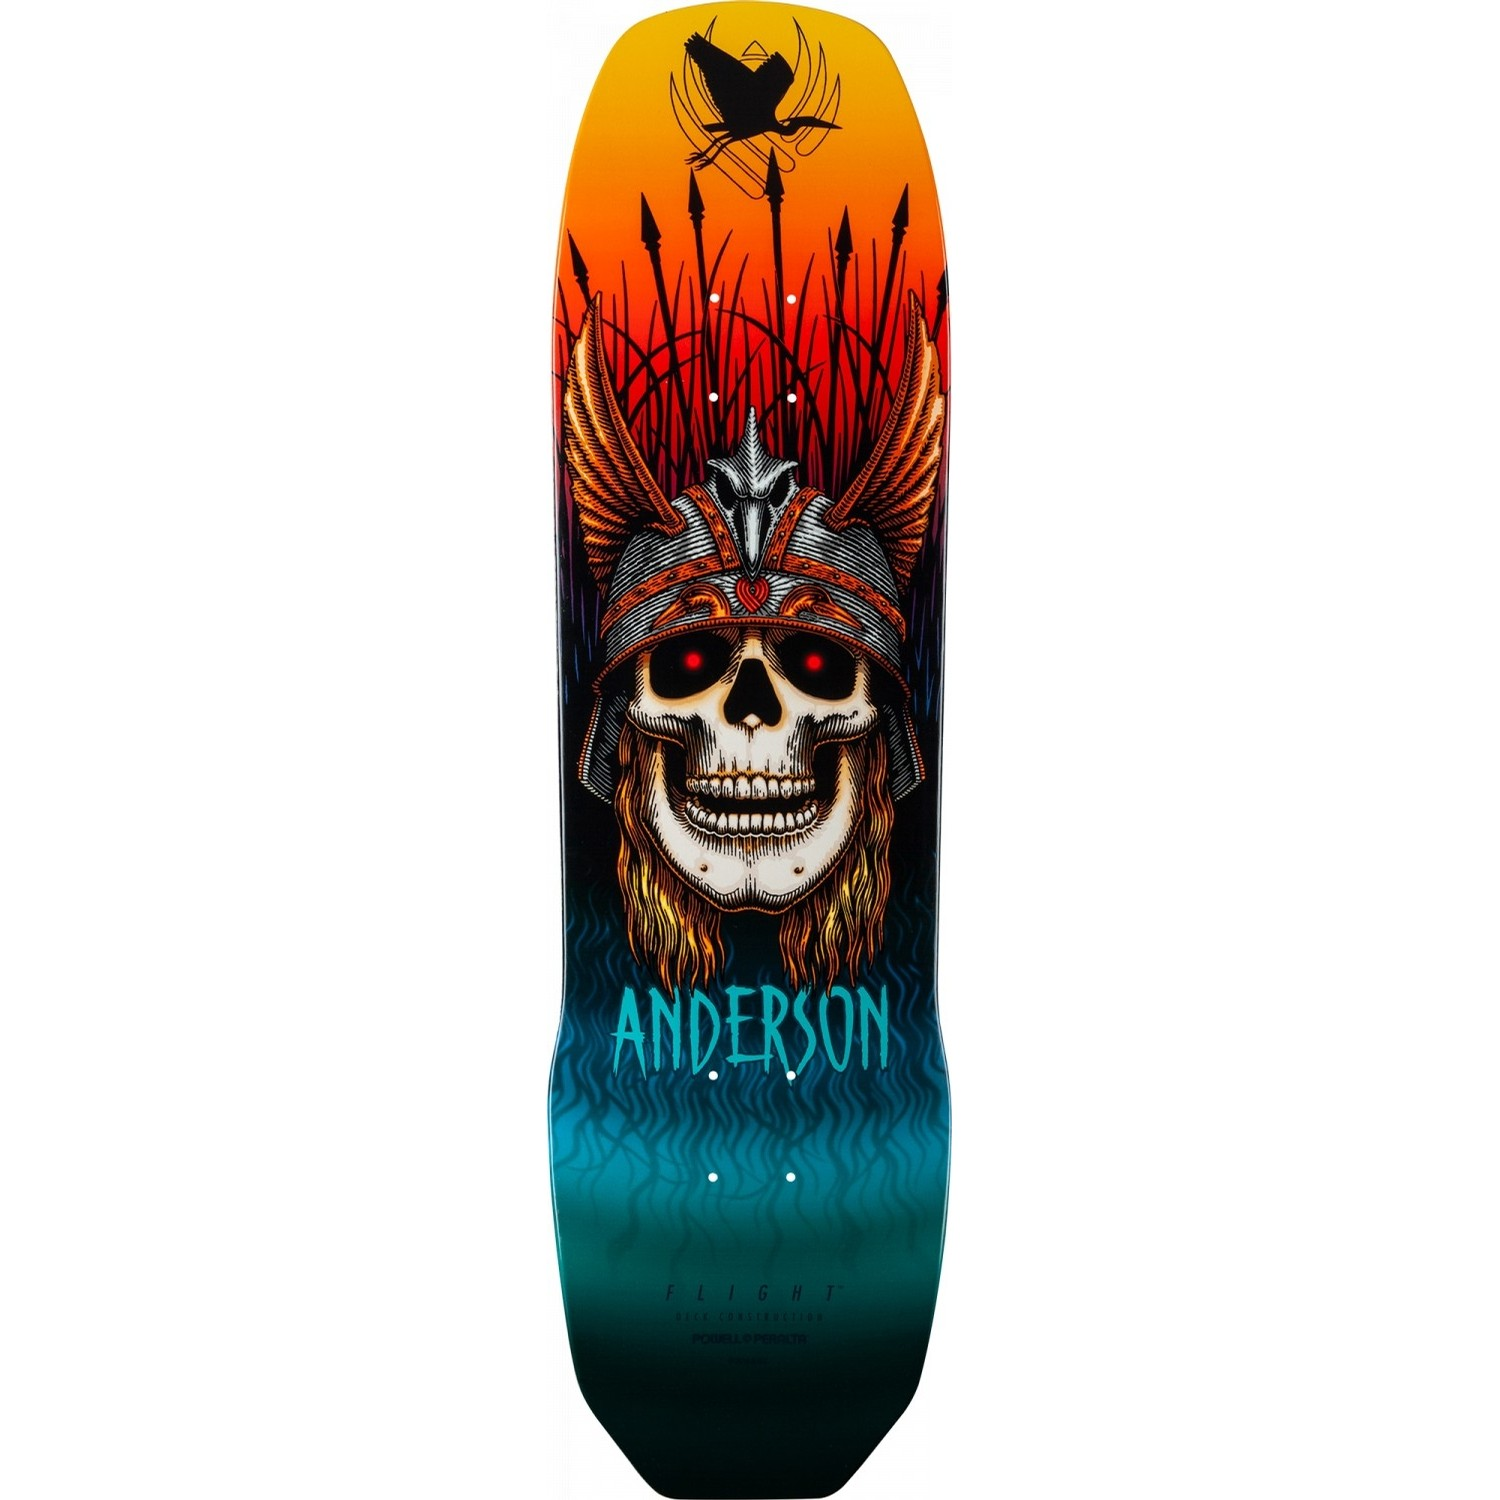 Andy Anderson Flight Deck *PRE ORDER*